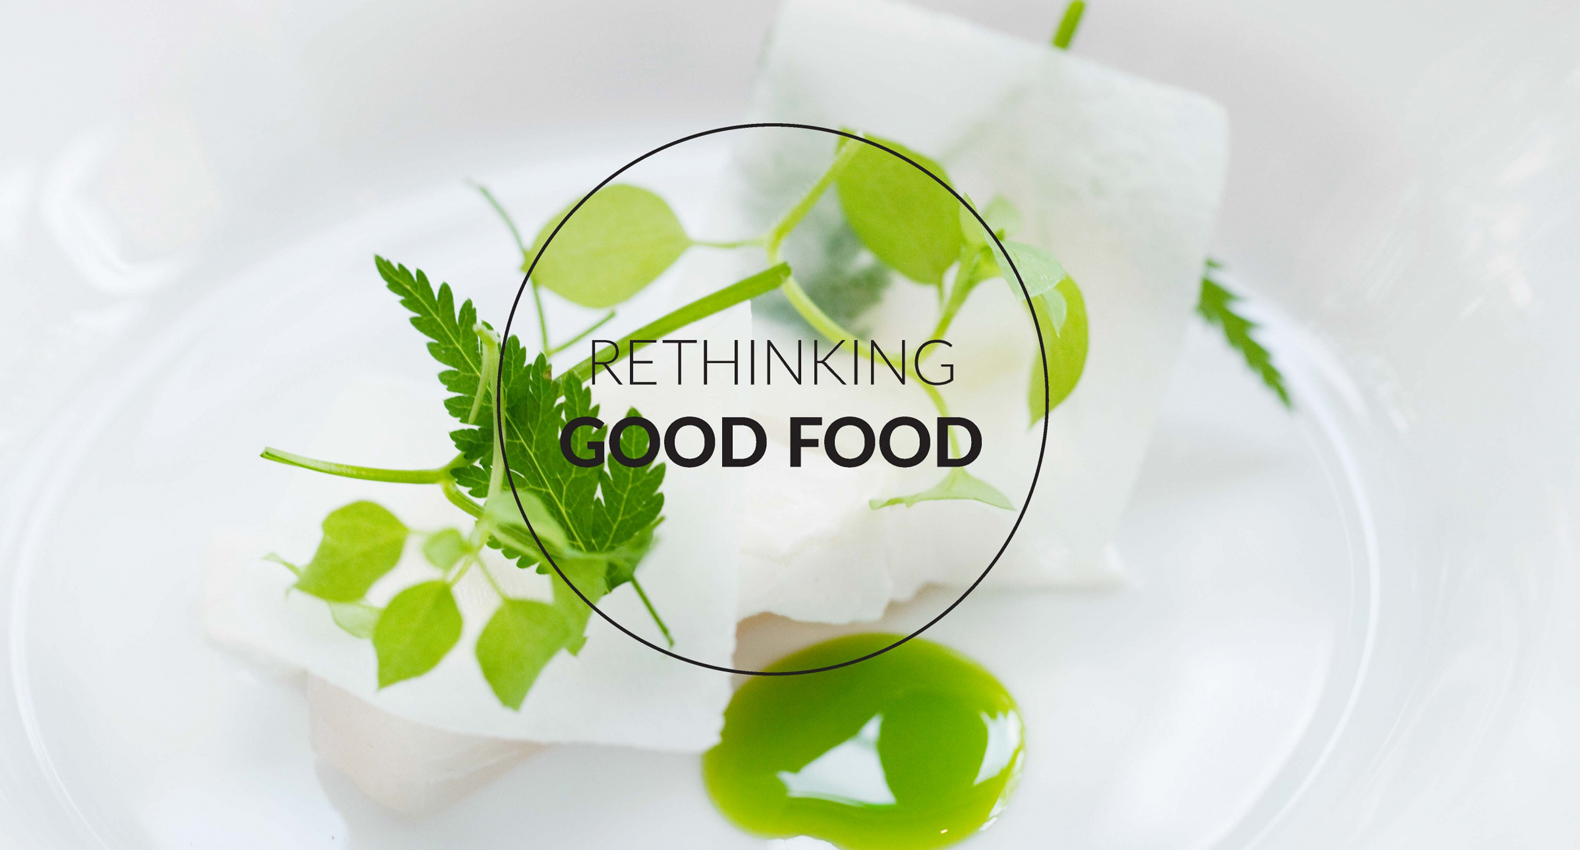 pages_from_erg_rethinking_good_food_1580_850jpg - 0